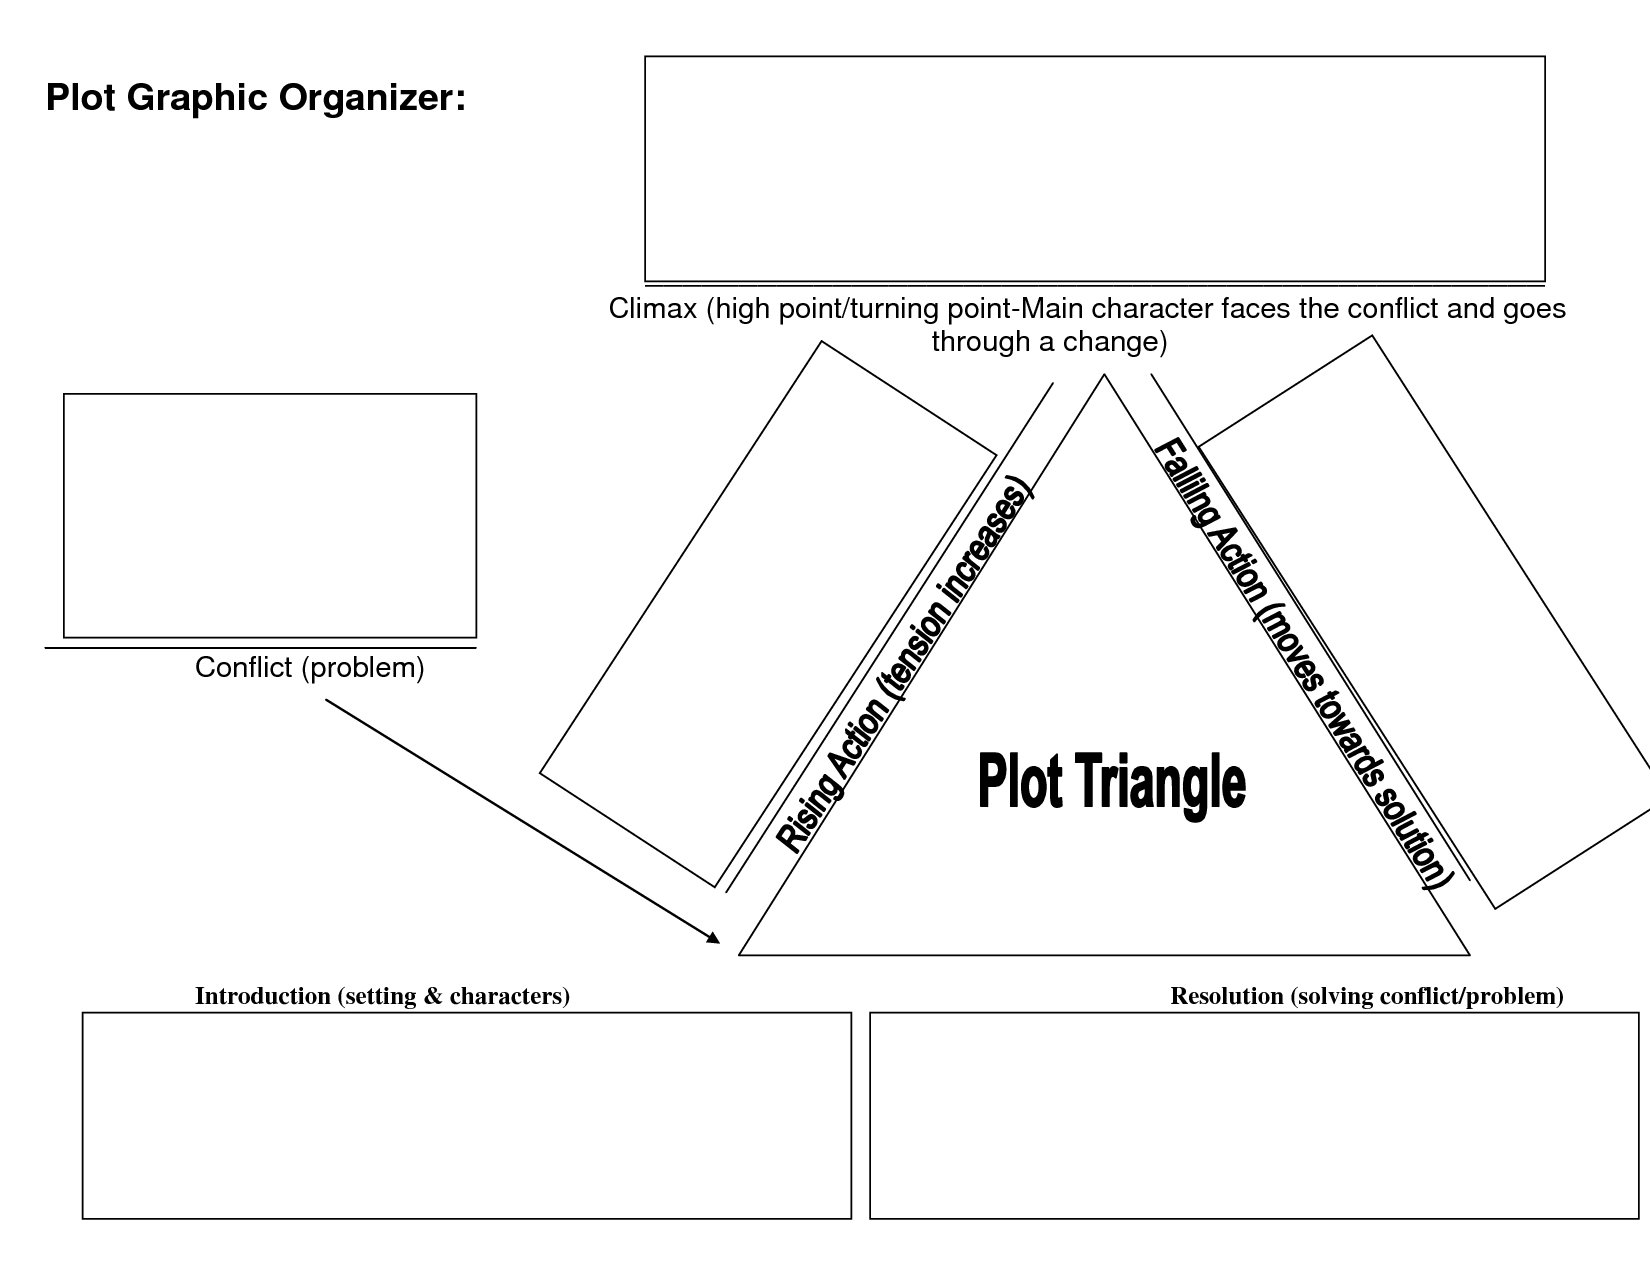 Plot Graphic Organizer 1